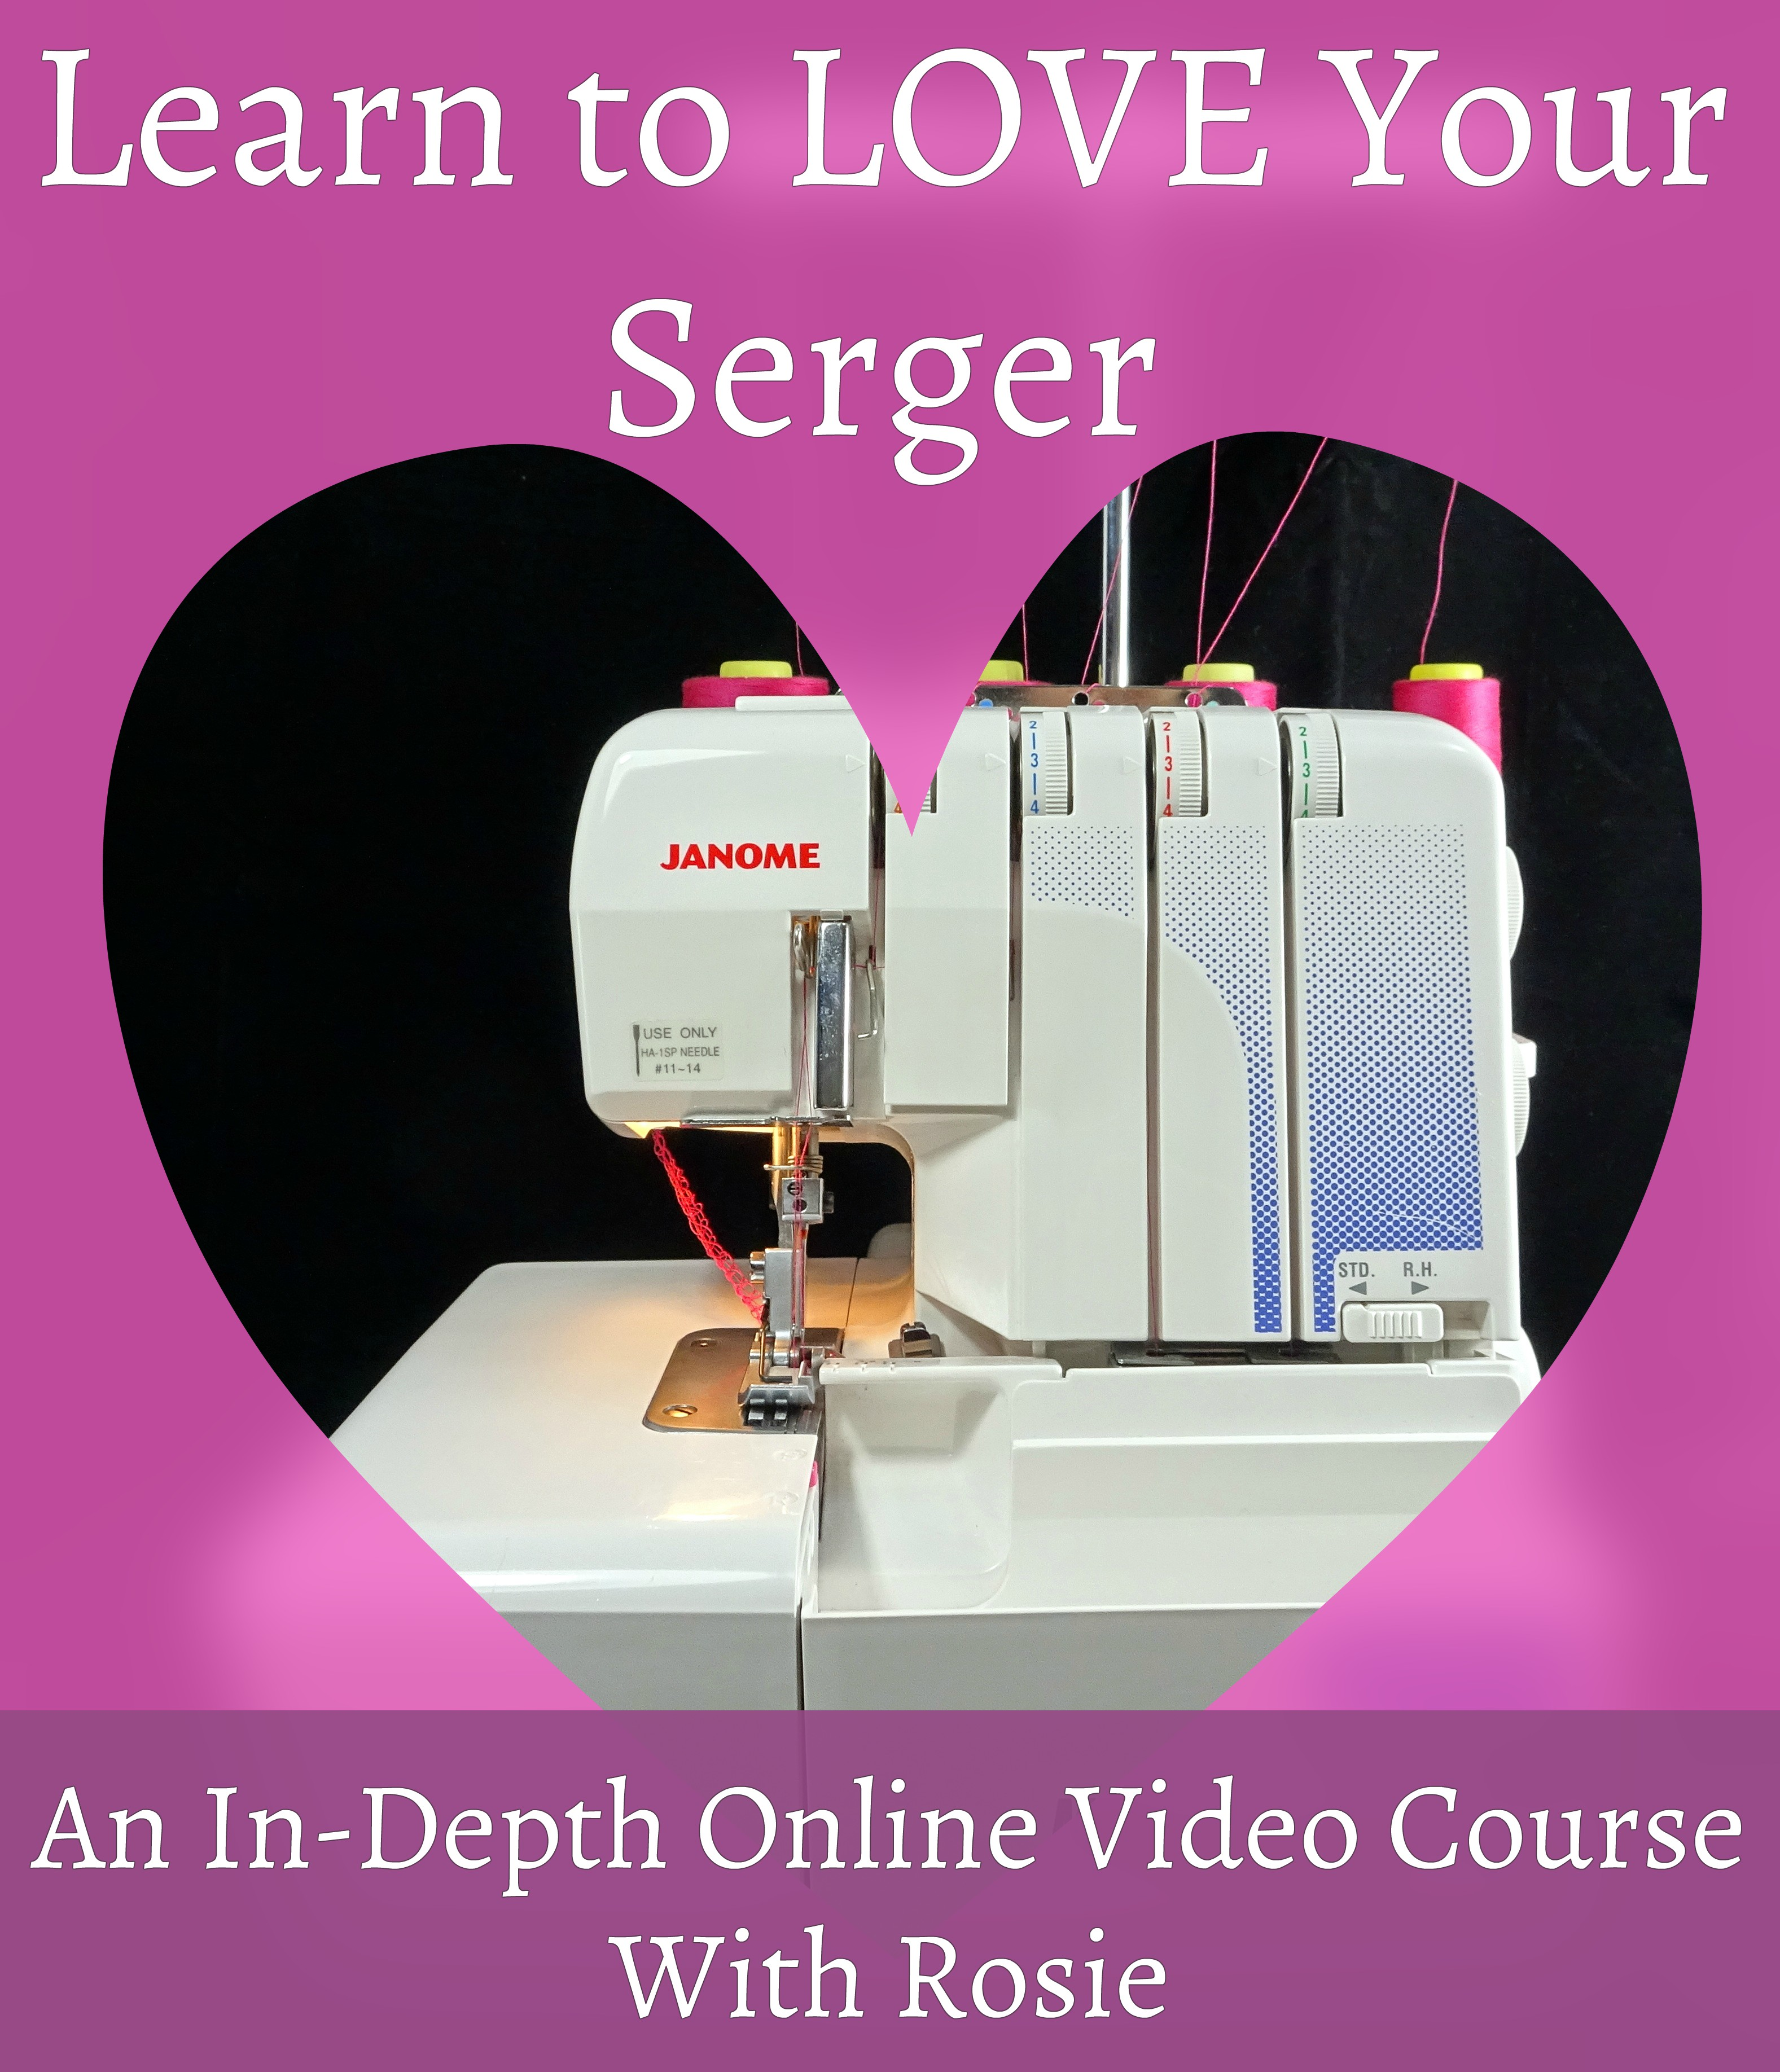 serger machine inside a heart | how to use a serger course | Rosies Doll Clothes Patterns